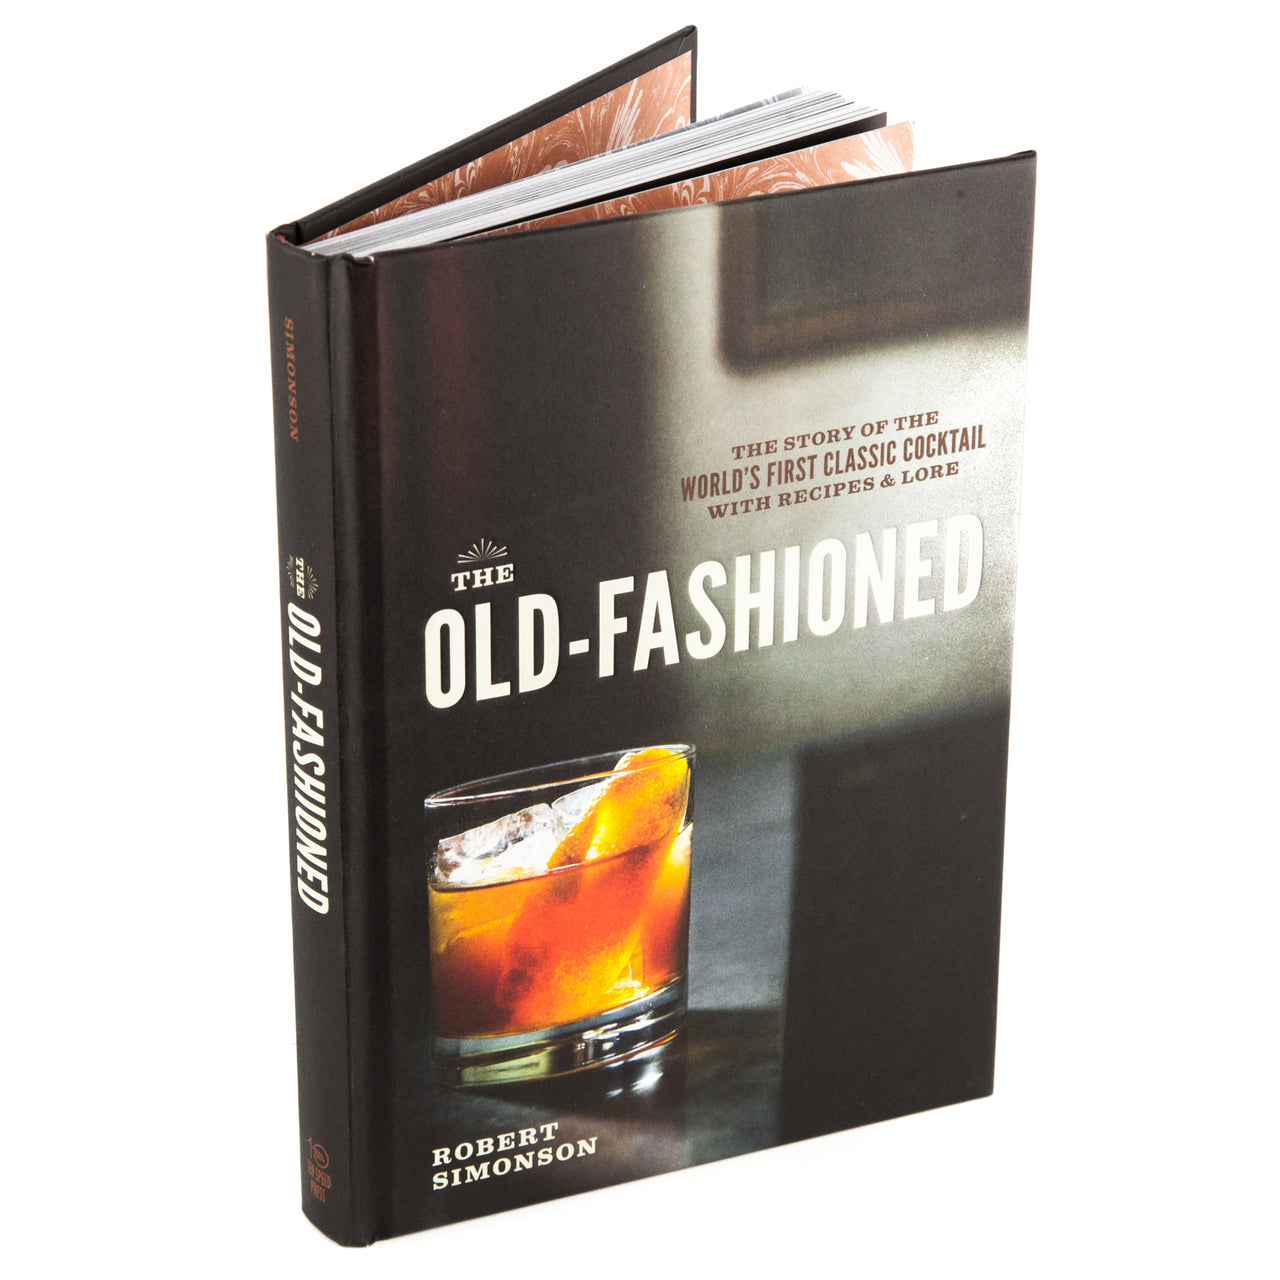 The Old Fashioned Cocktail Recipes Hardcover Book Robert Simonson